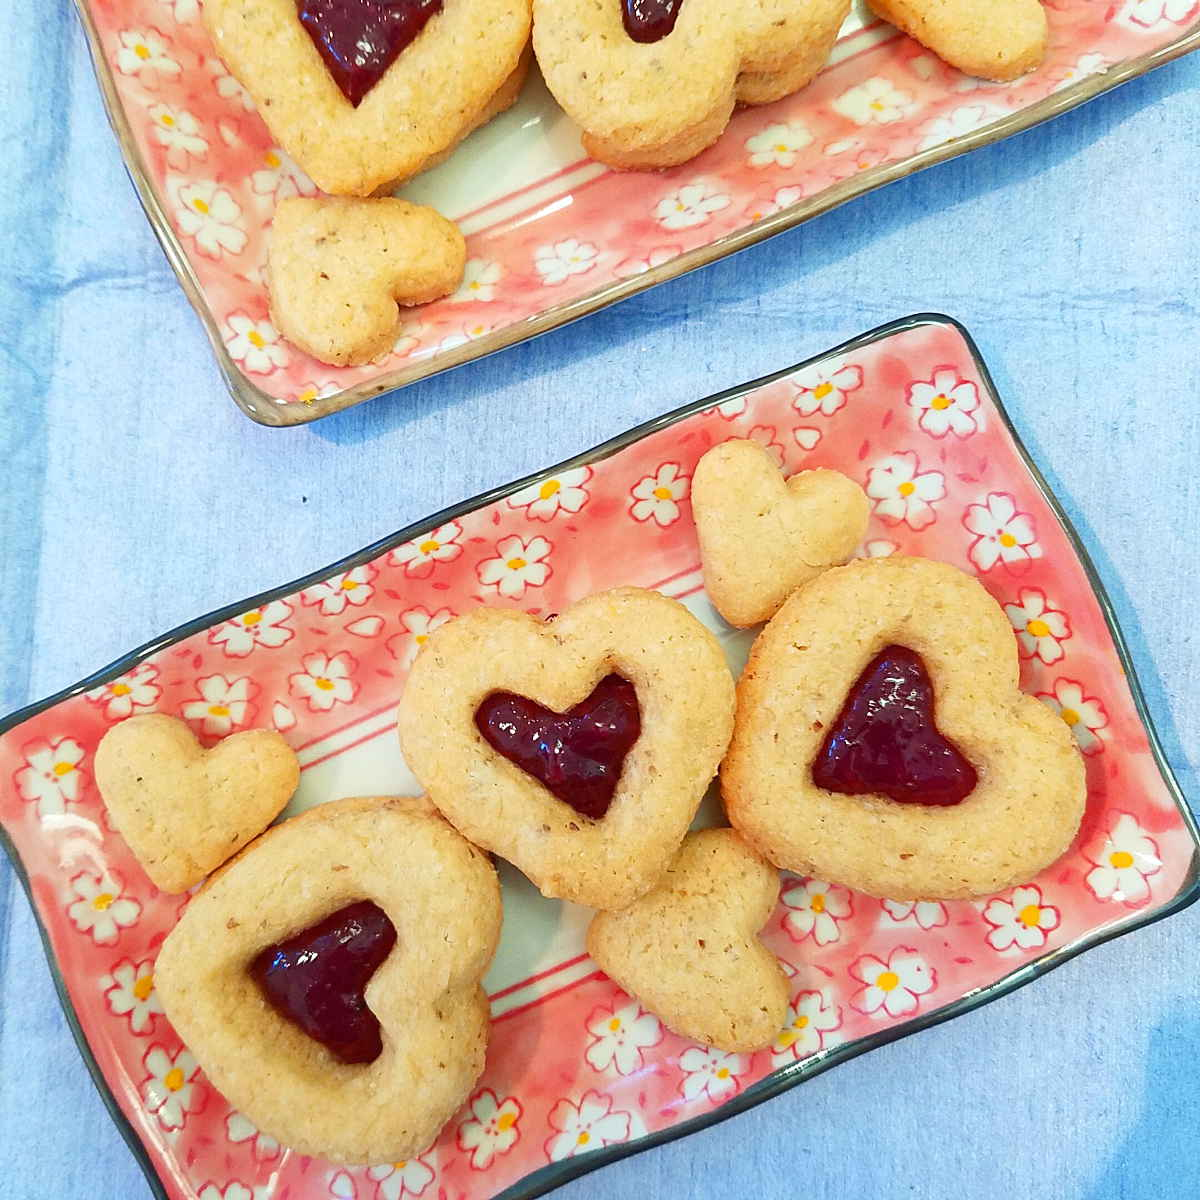 raspbery jam gluten free vegan heart shaped cookies pink